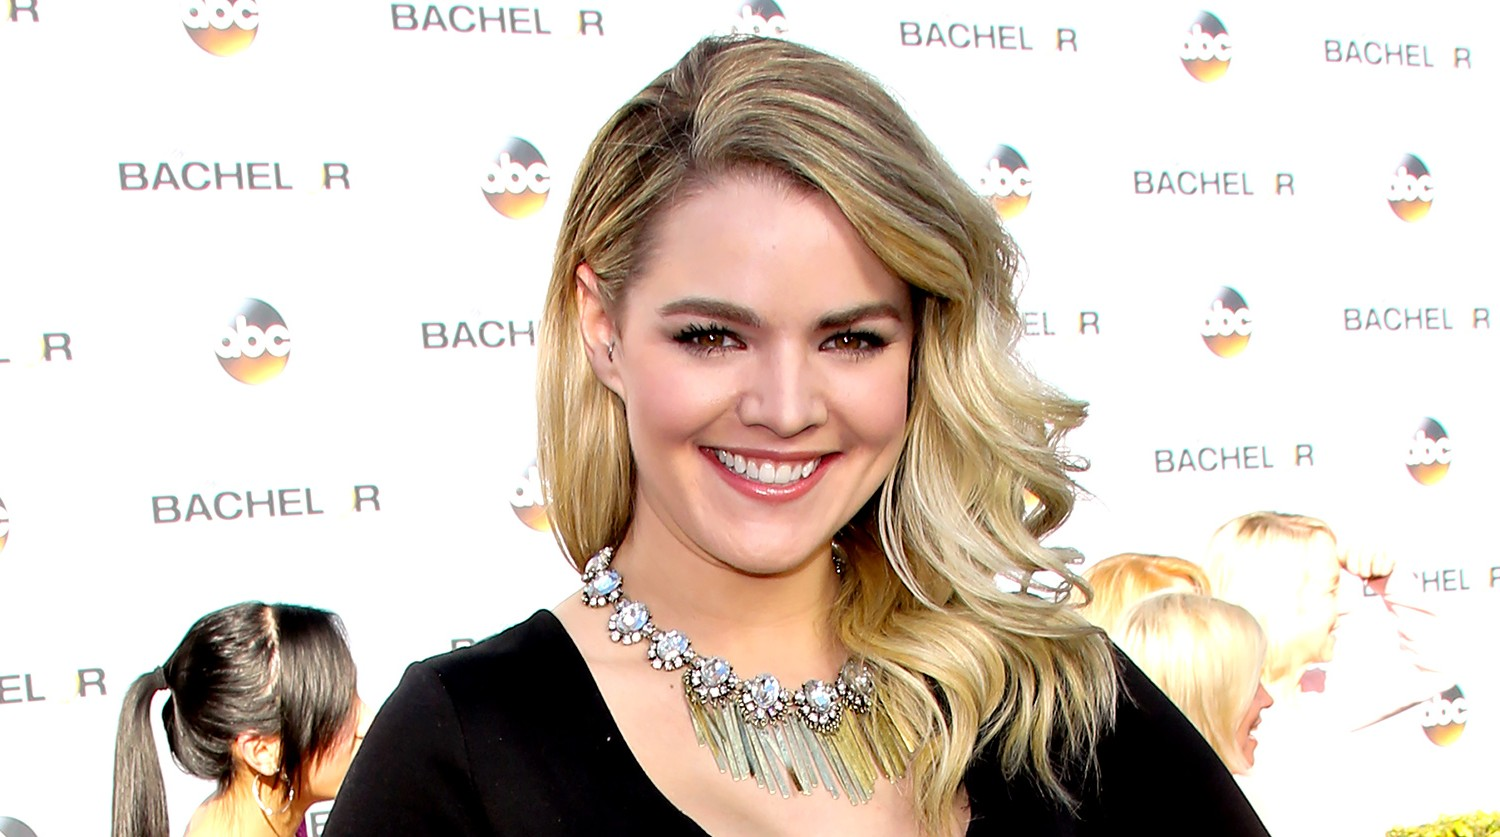 Nikki Ferrell gets engaged to Tyler VanLoo over vacation.